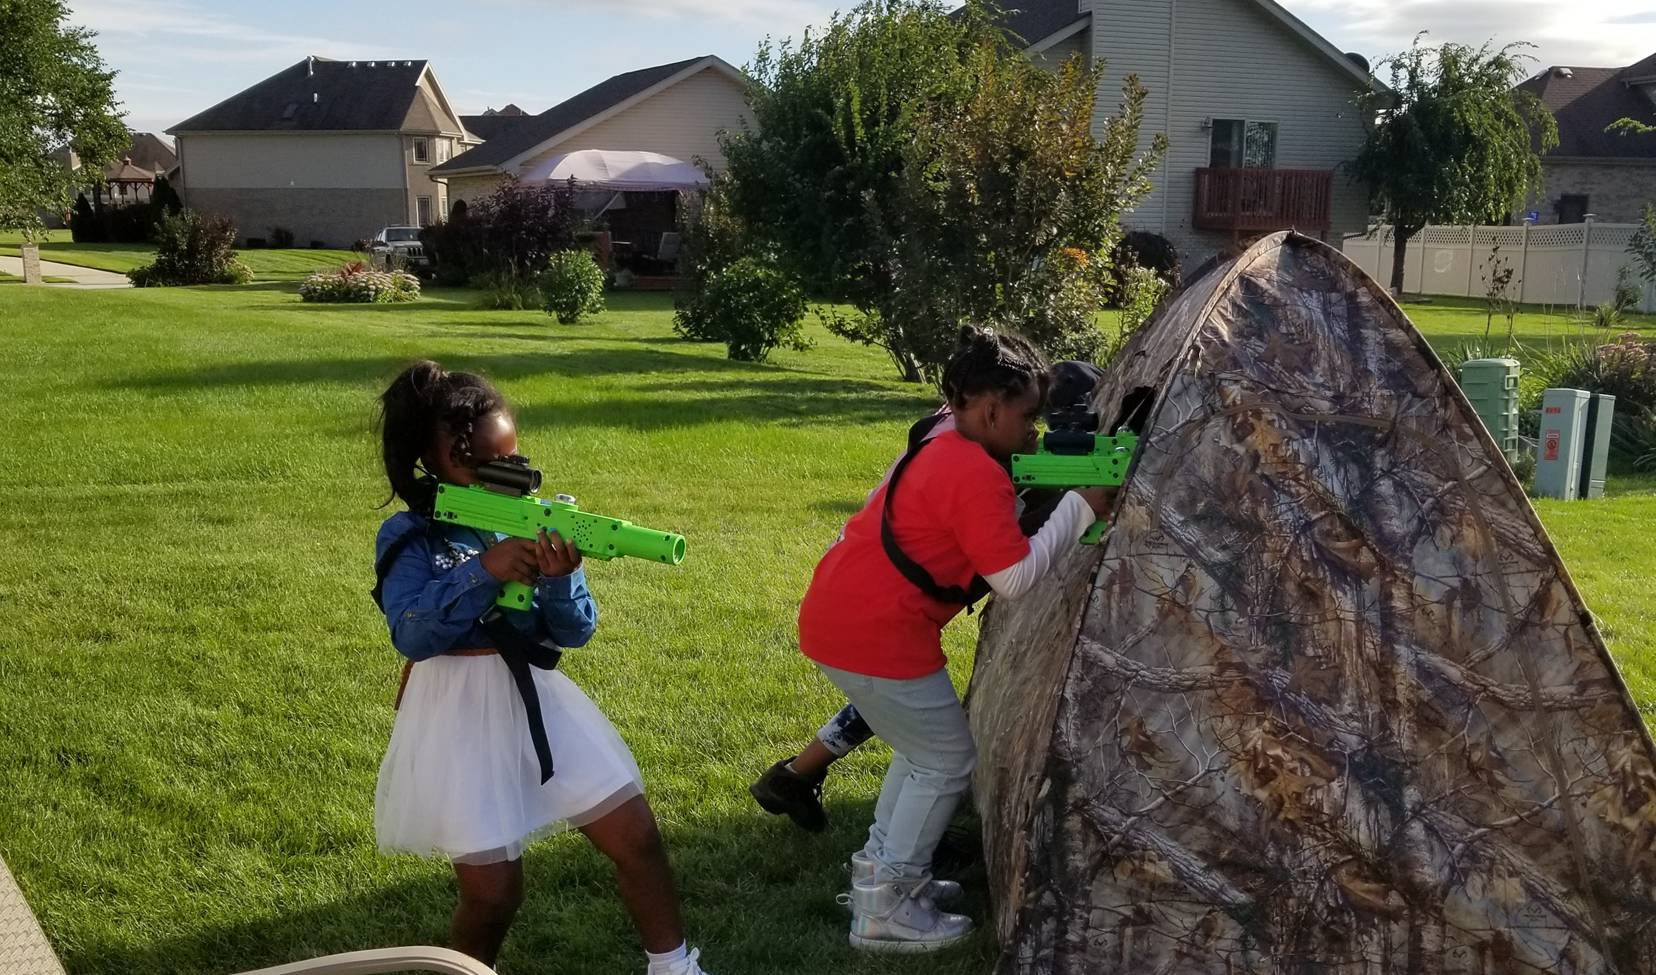 Laser Tag party in Chicago, Illinois